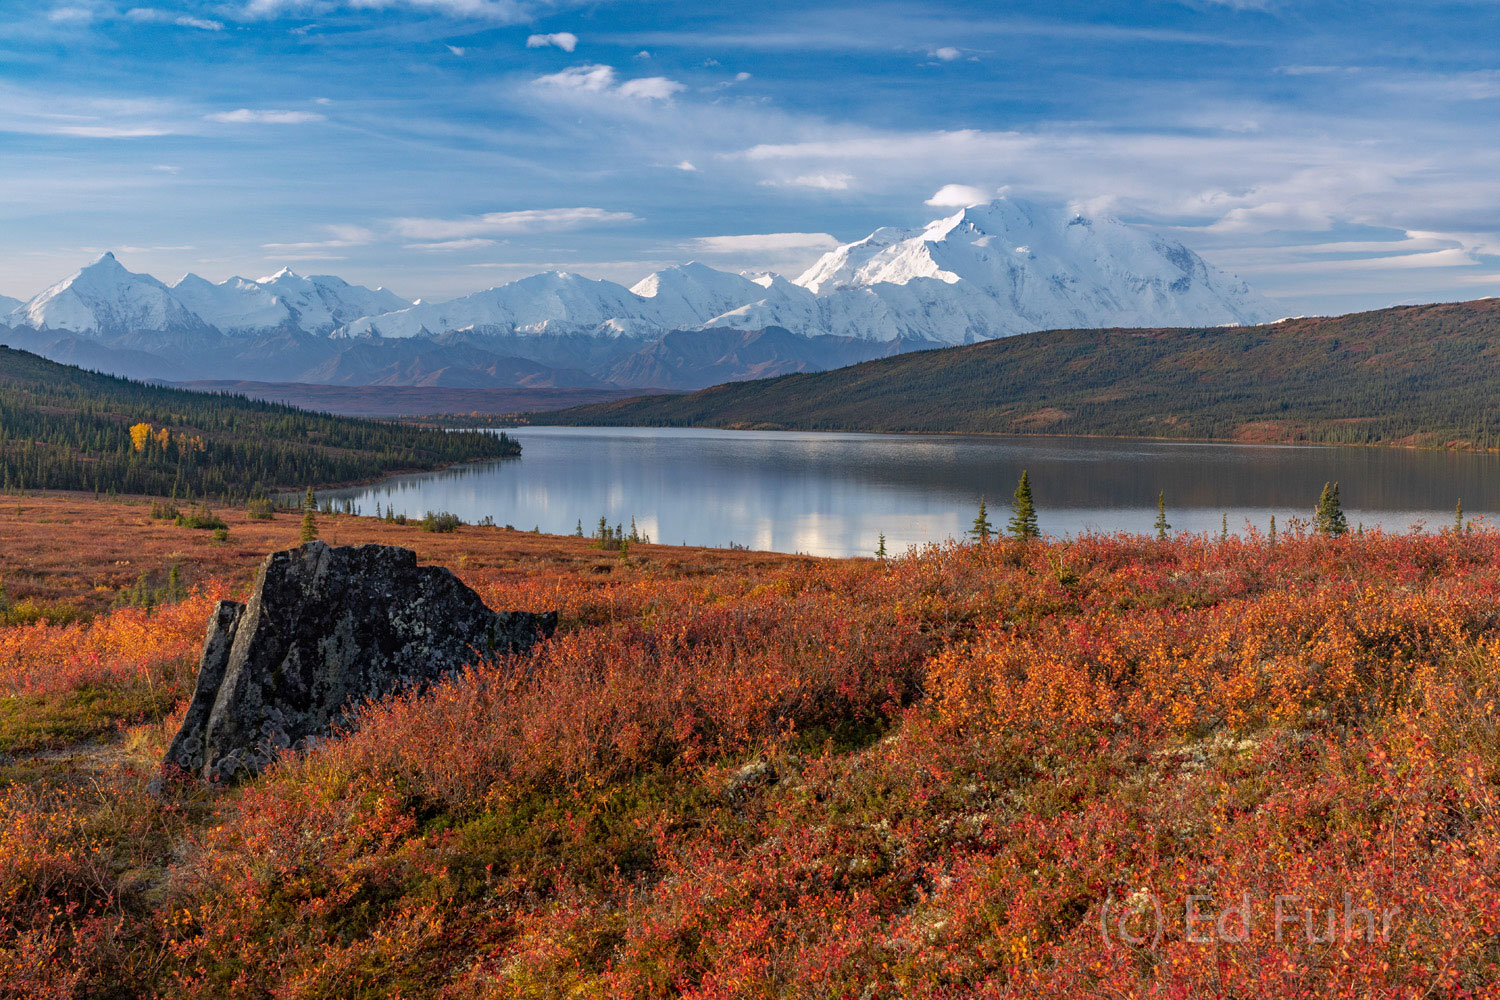 A large boulder is a reminder of the glacial forces that shaped the Denali landscape